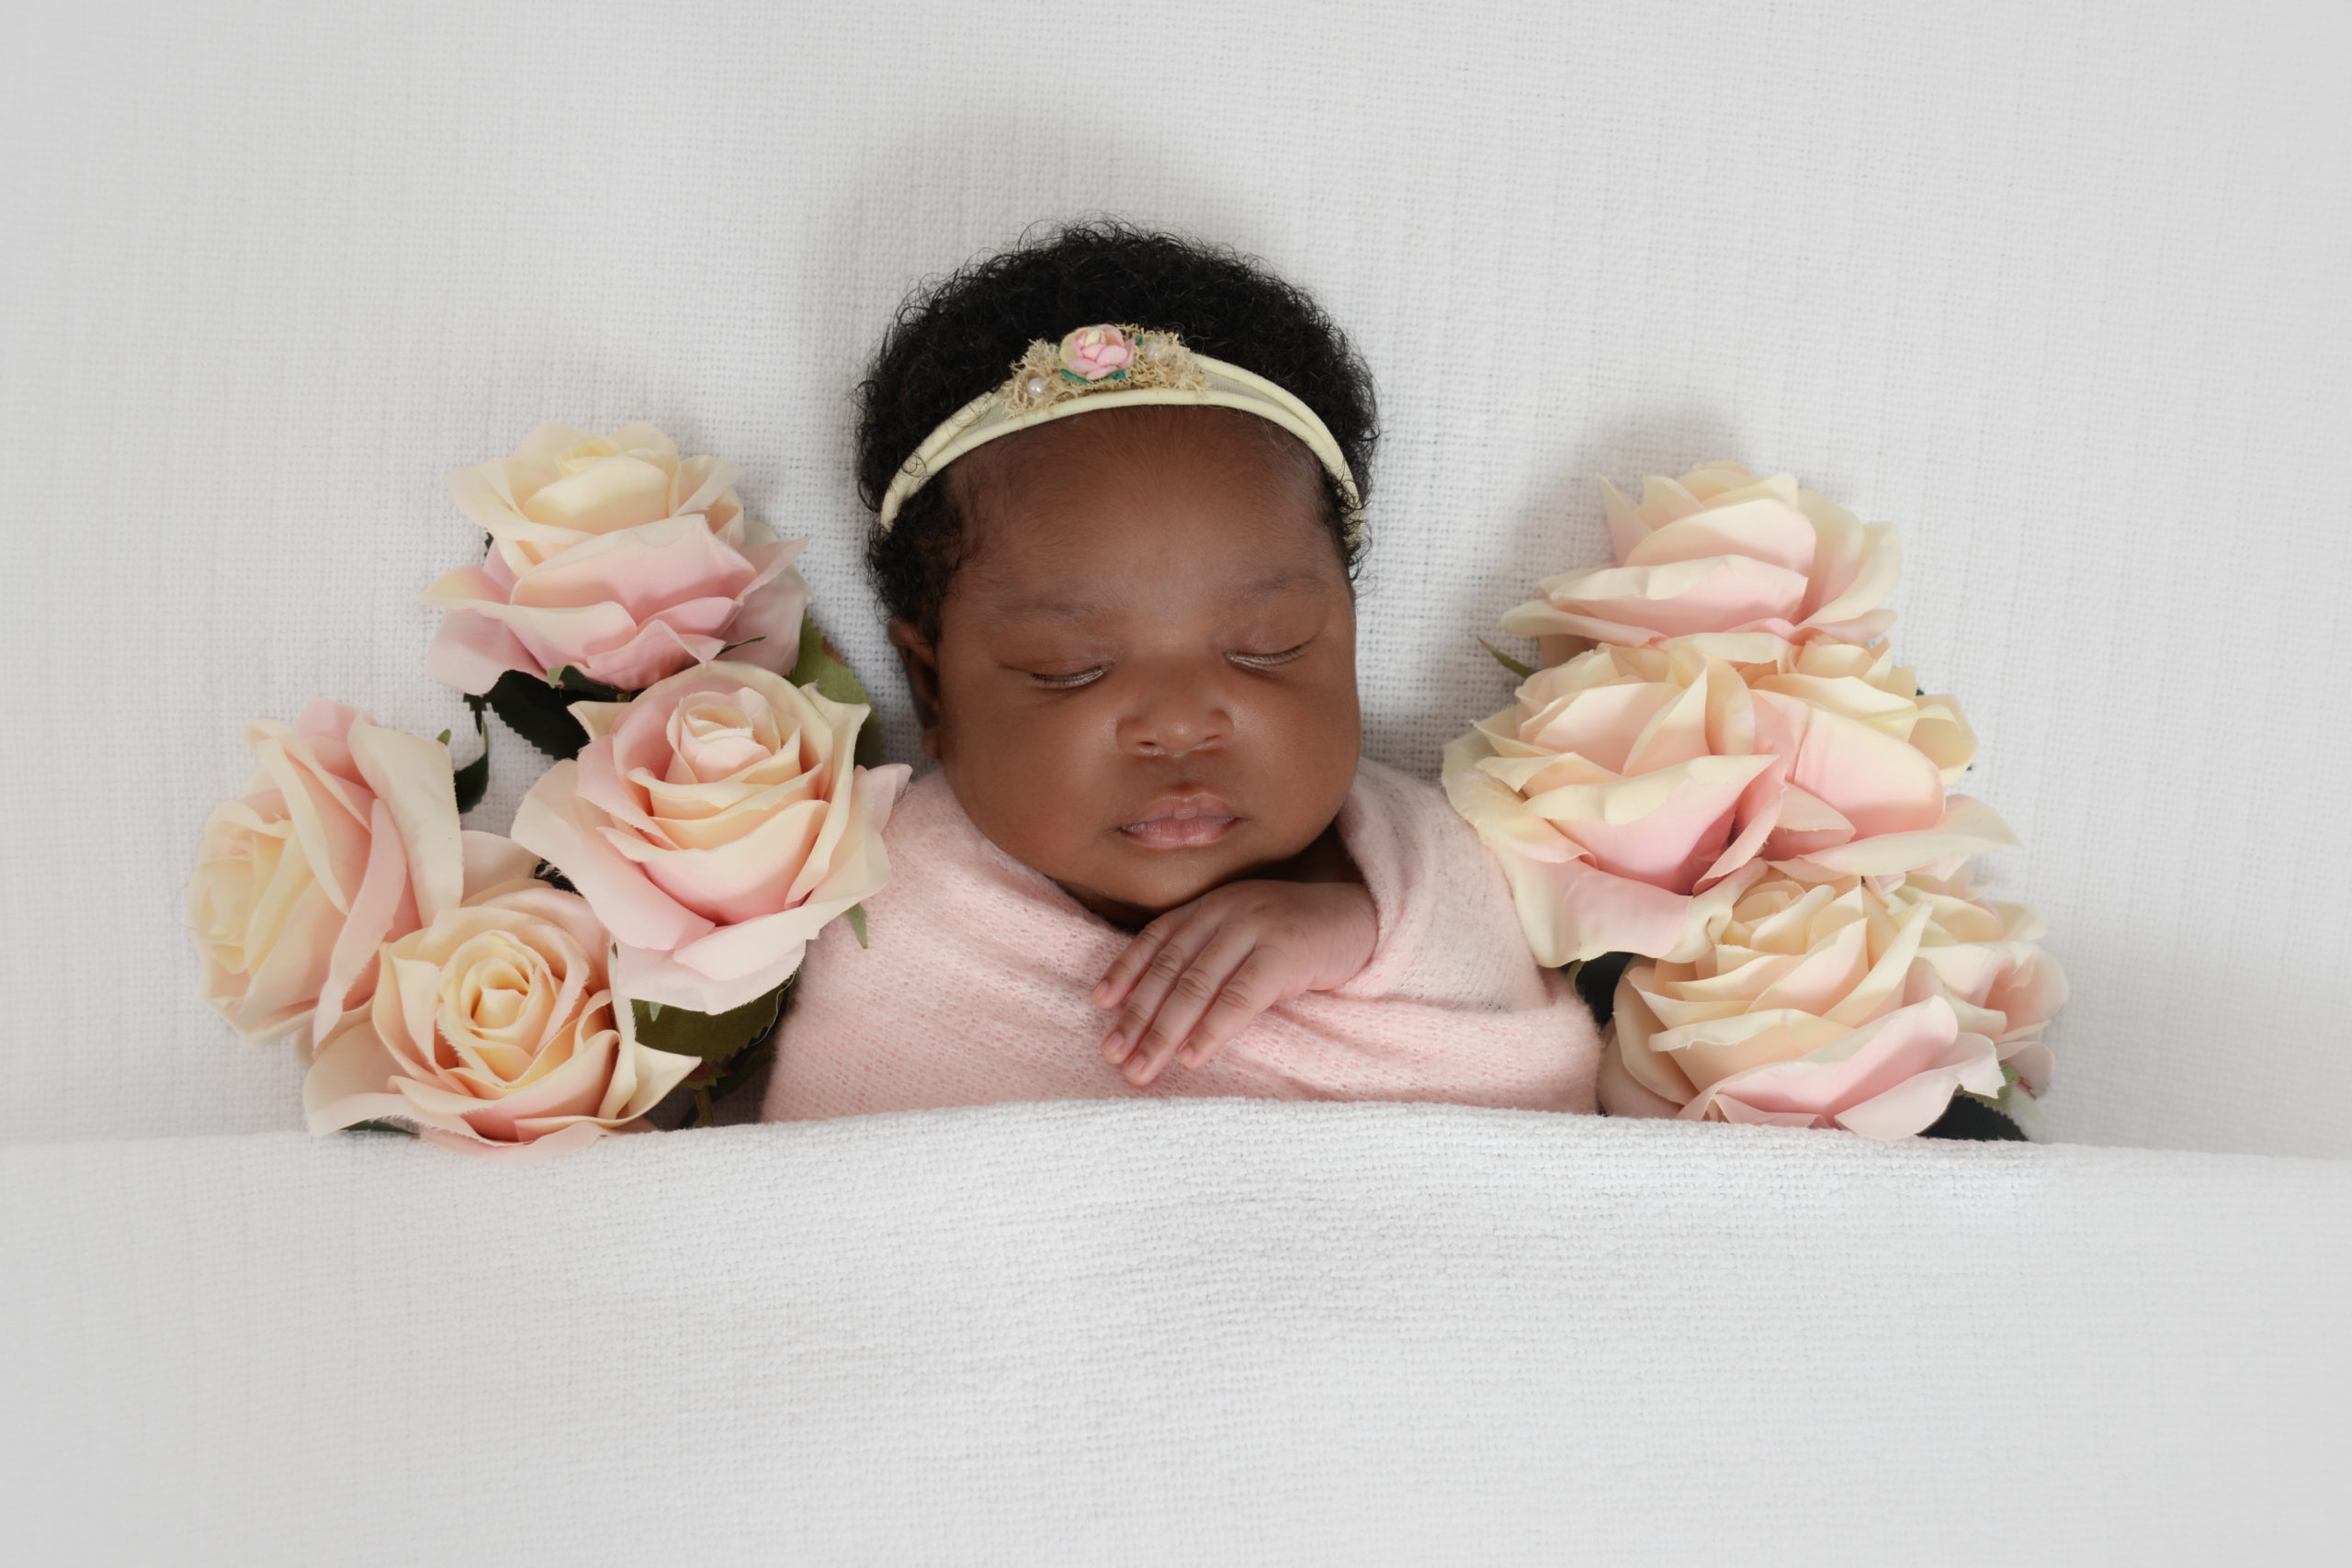 Newborn baby girl with roses by Thanet Newborn Photographer